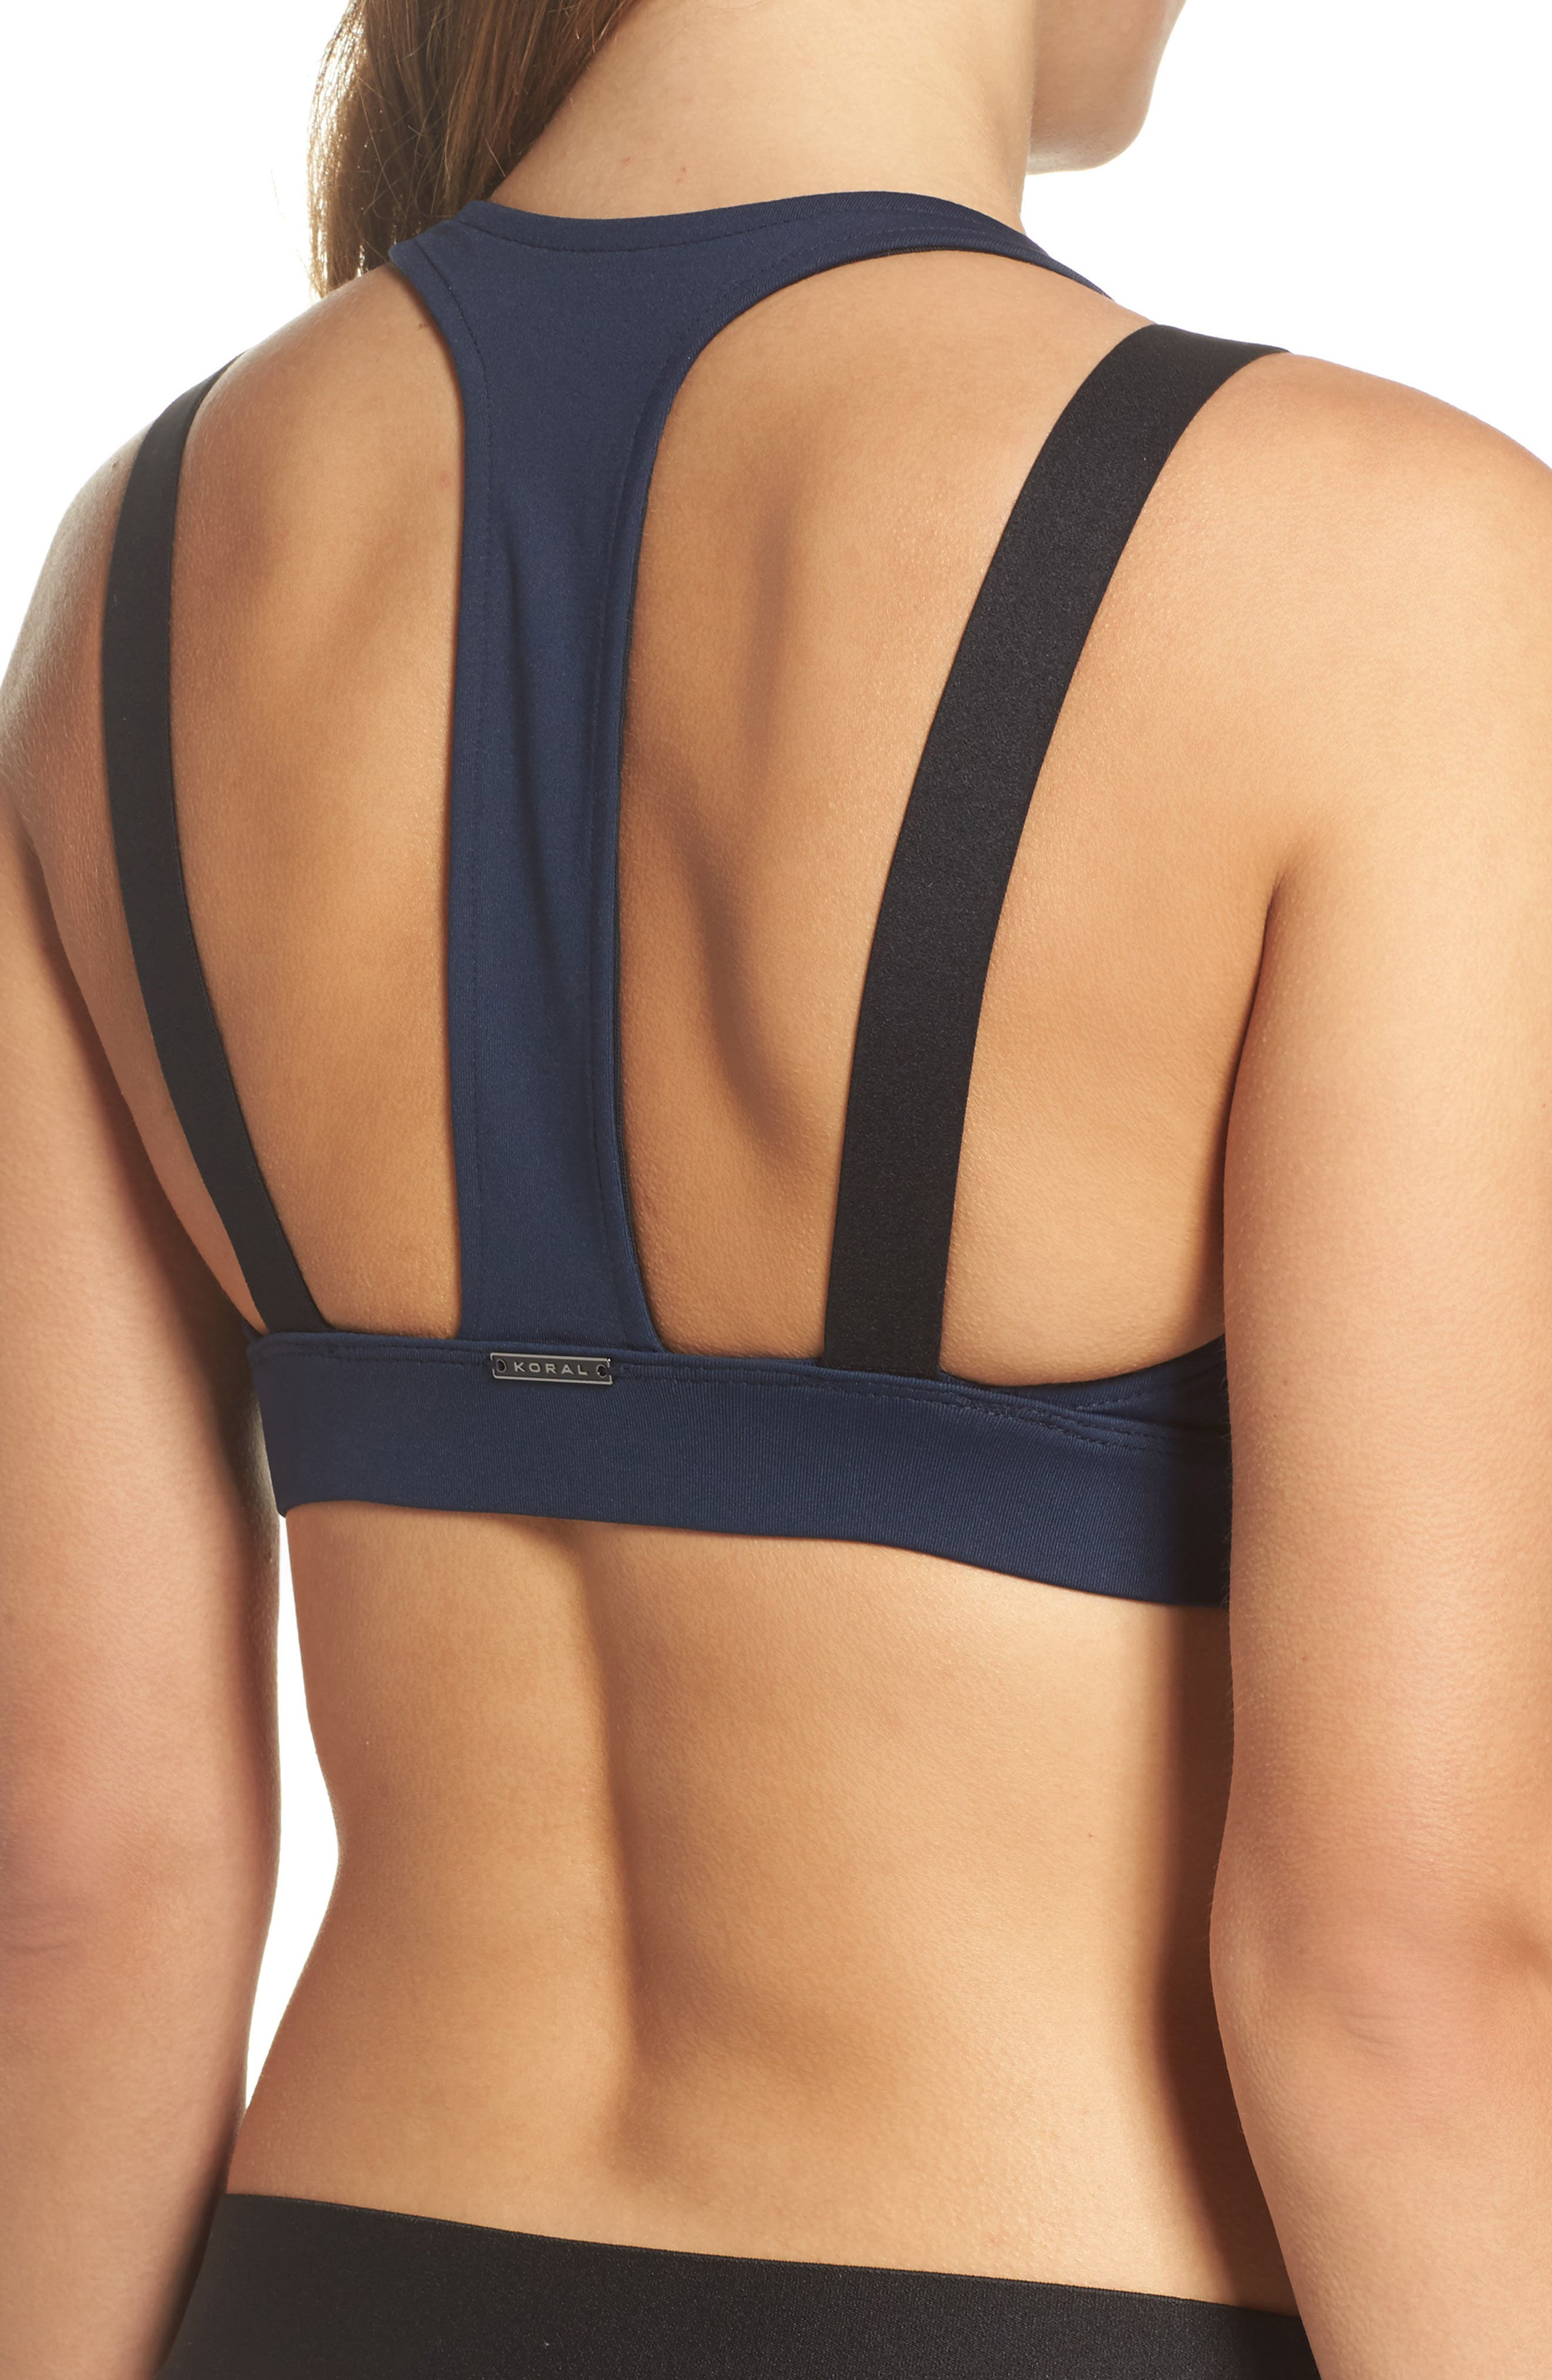 Forte Sports Bra,                             Alternate thumbnail 2, color,                             Midnight Blue/ Black